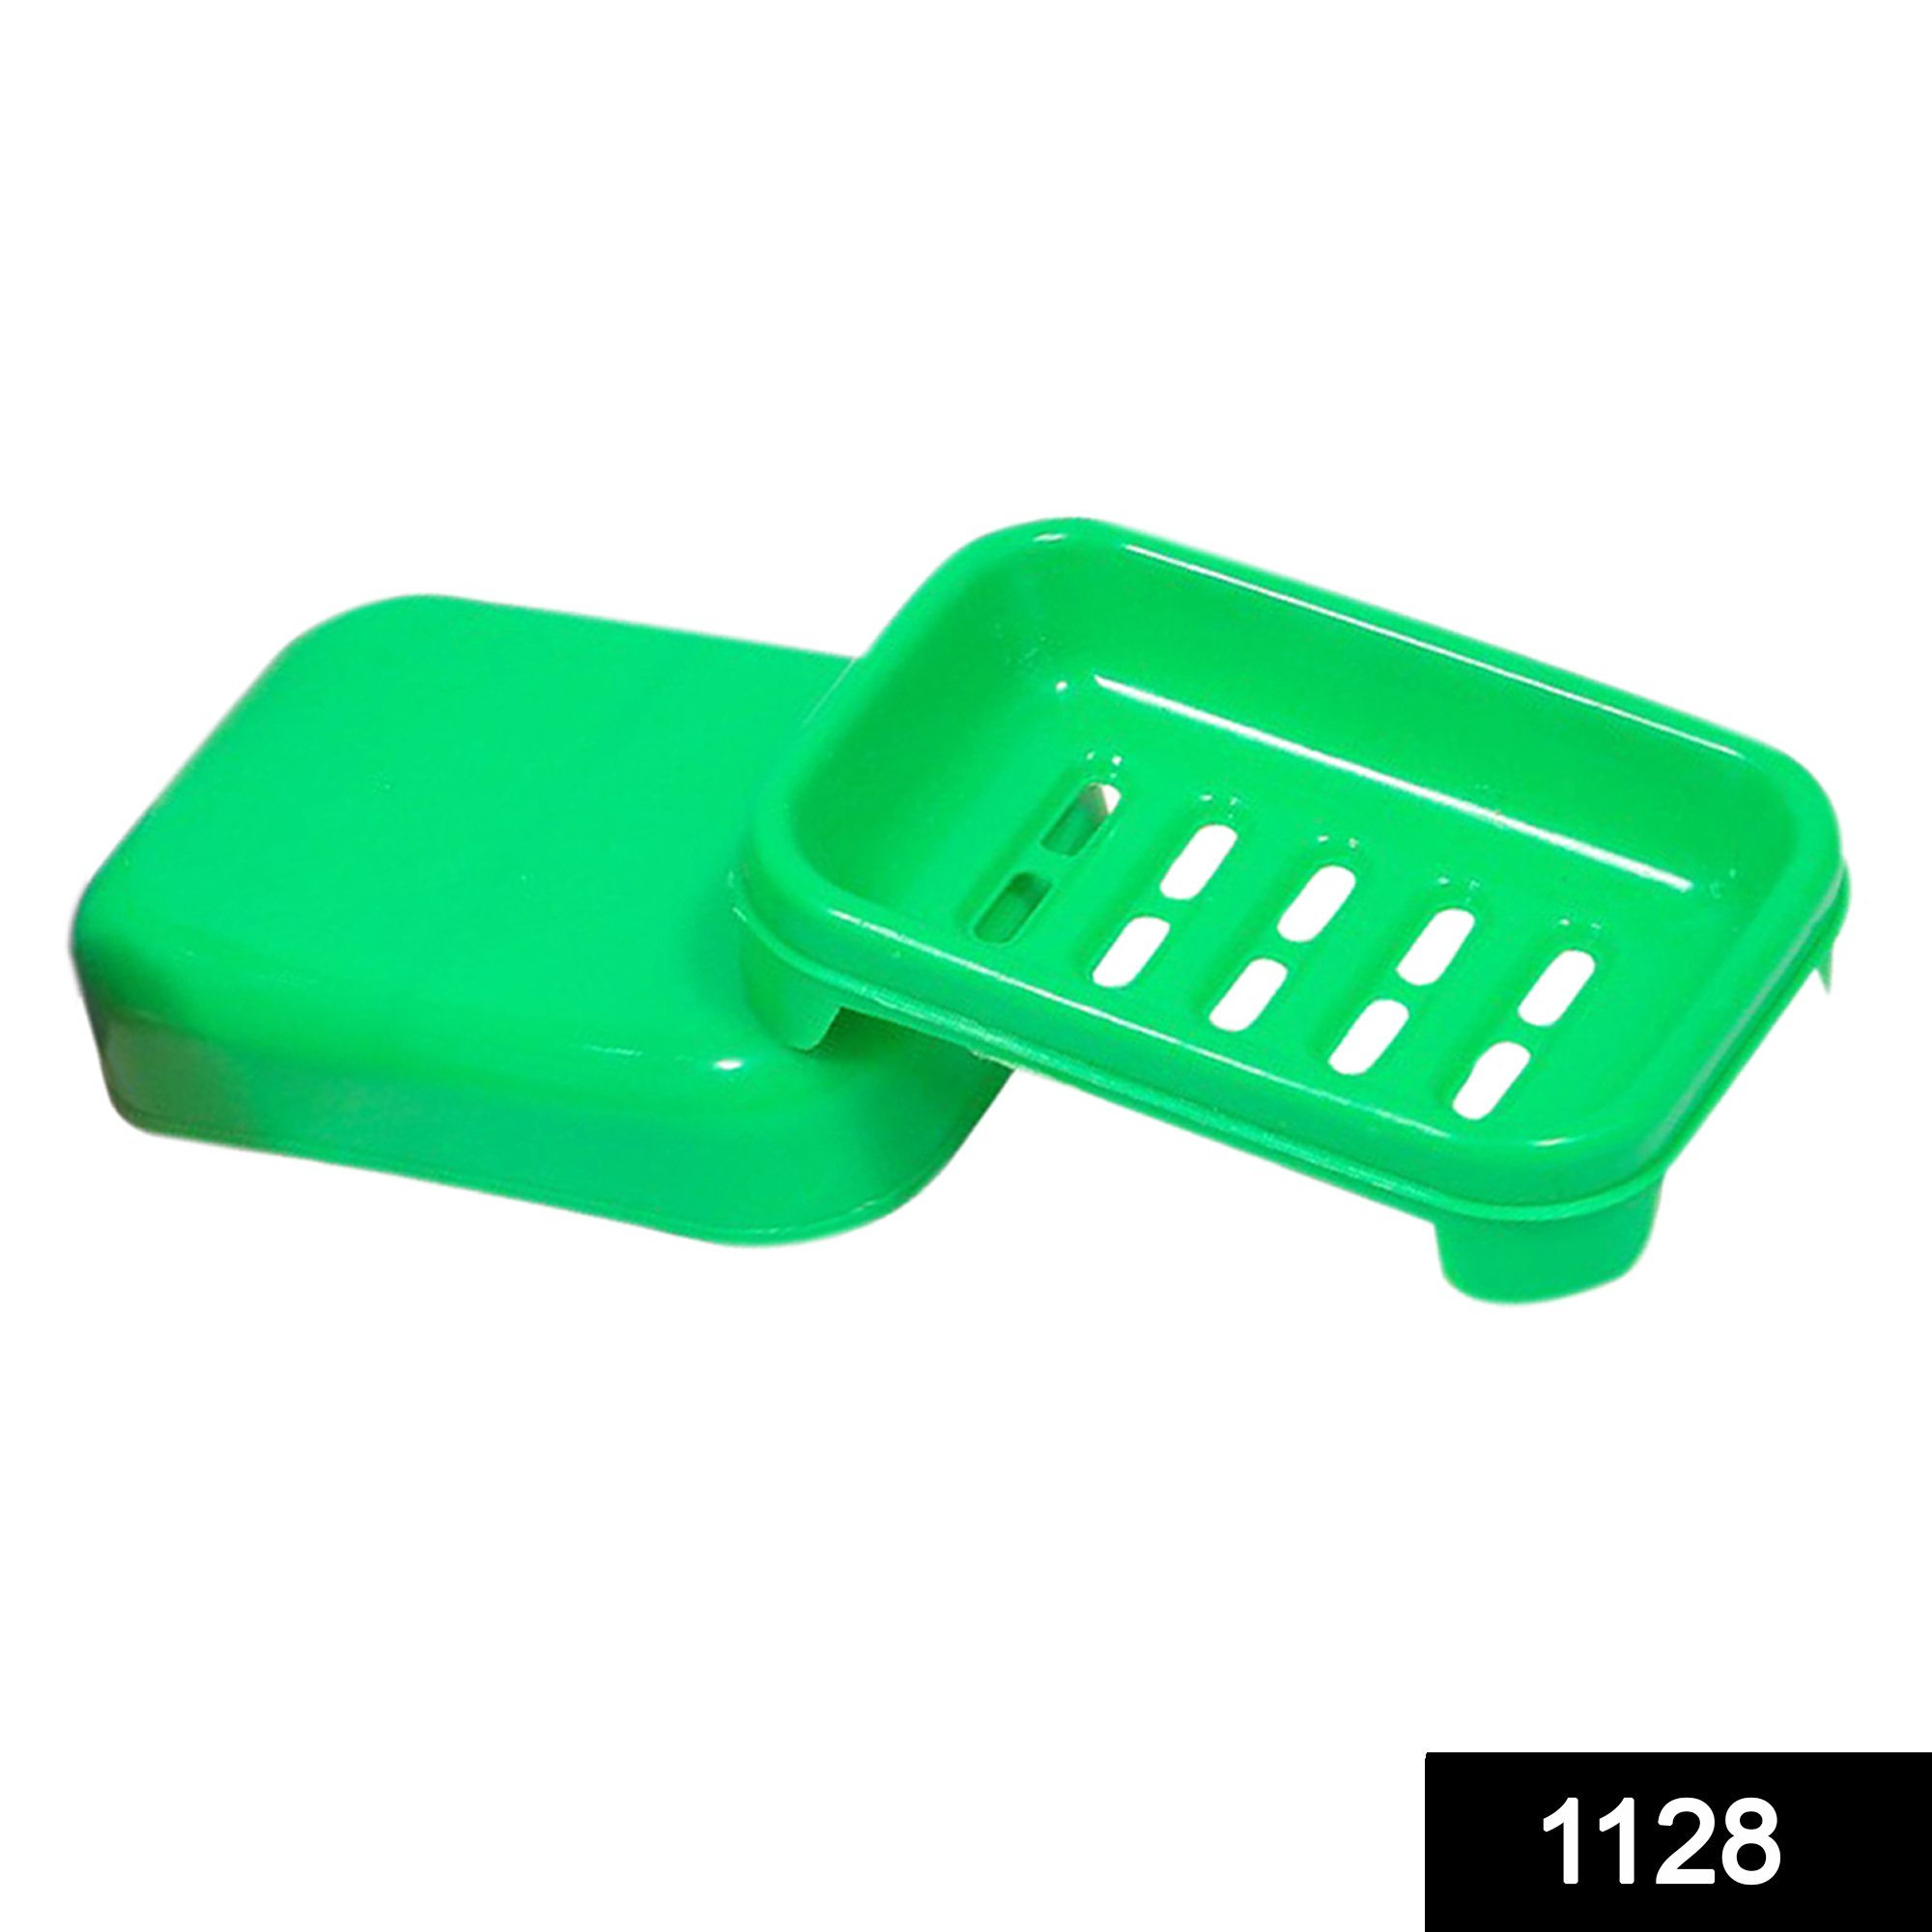 1128 Covered Soap keeping Plastic Case for Bathroom use -